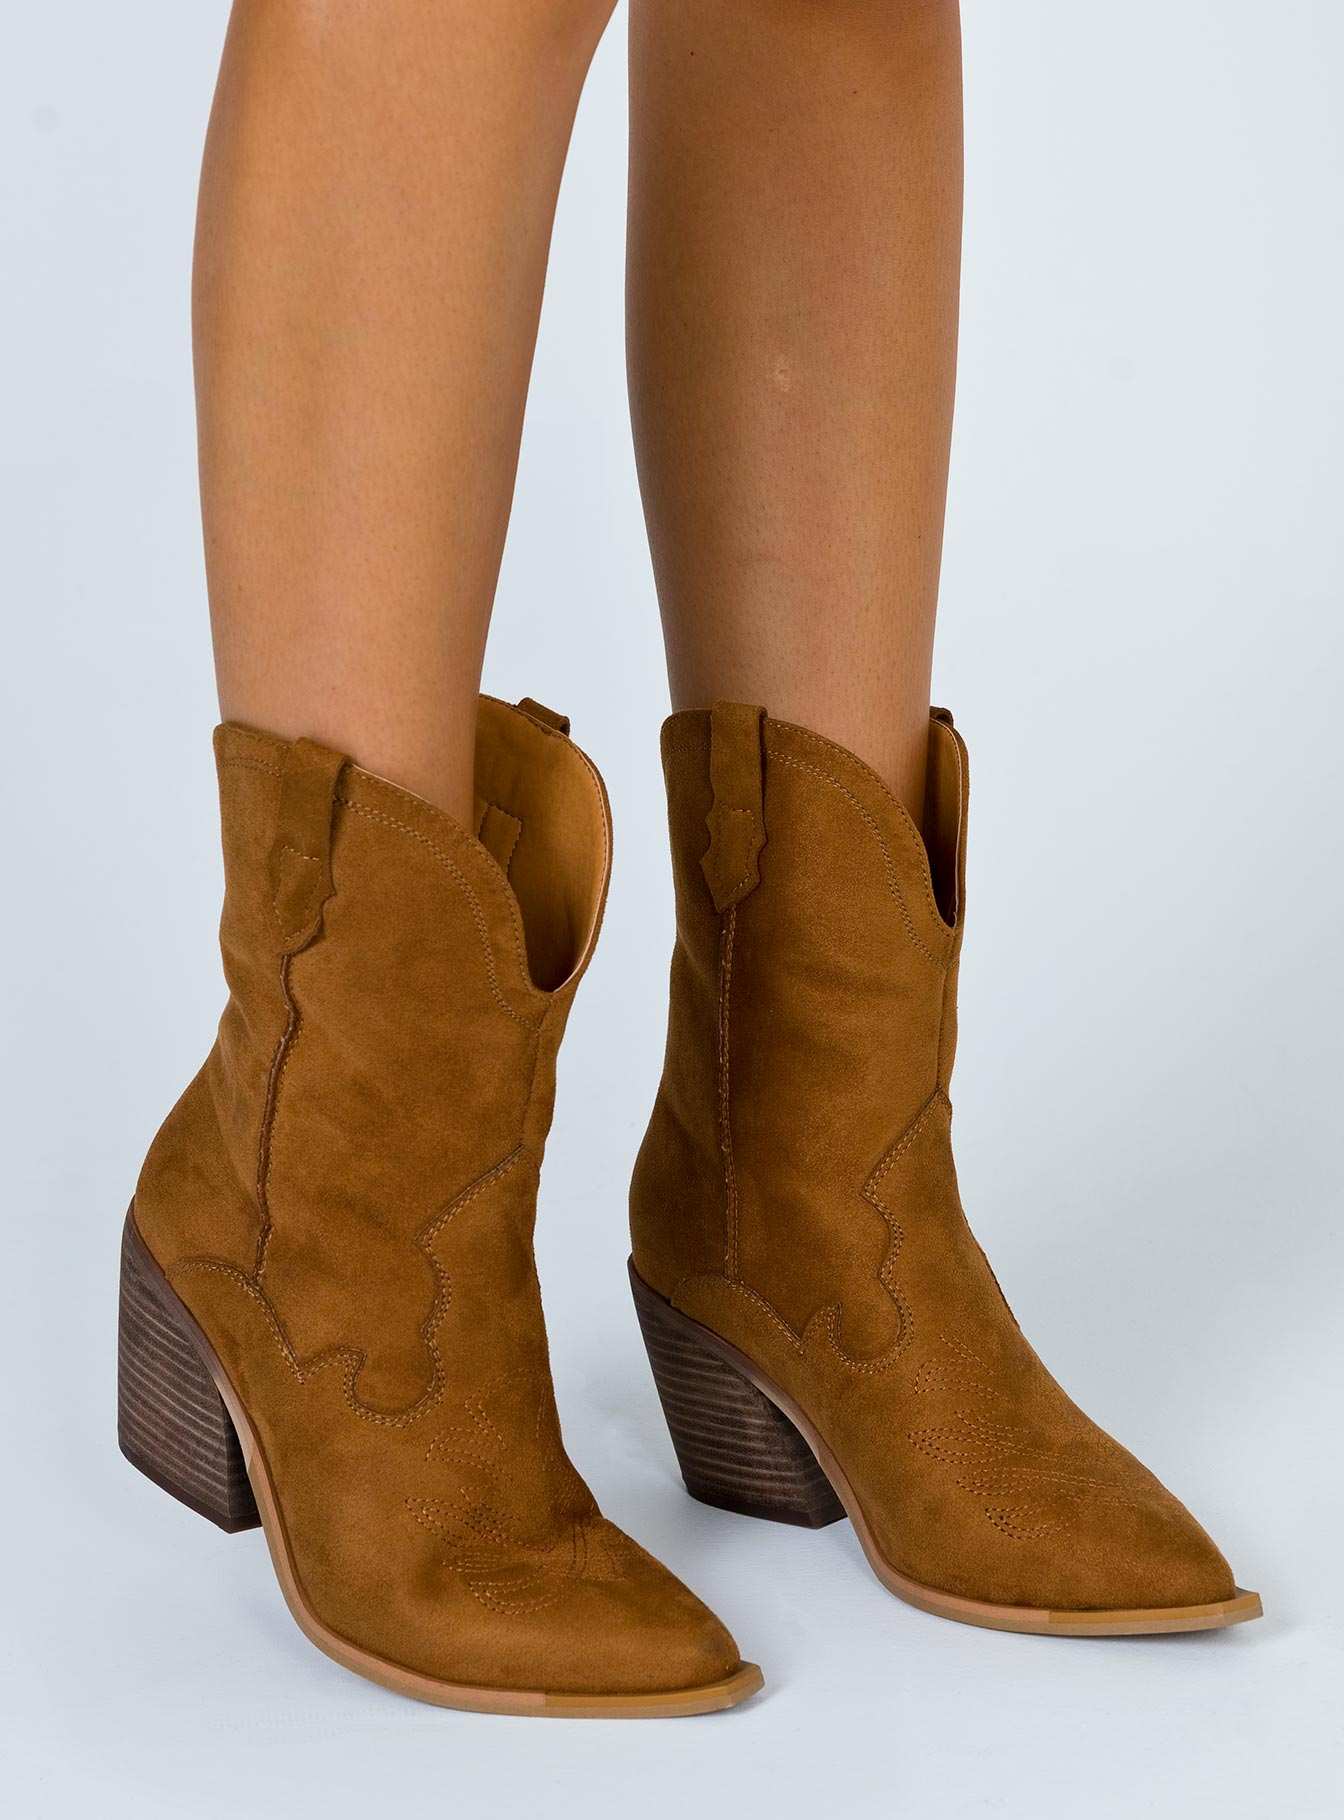 Therapy Millie Tan Boots